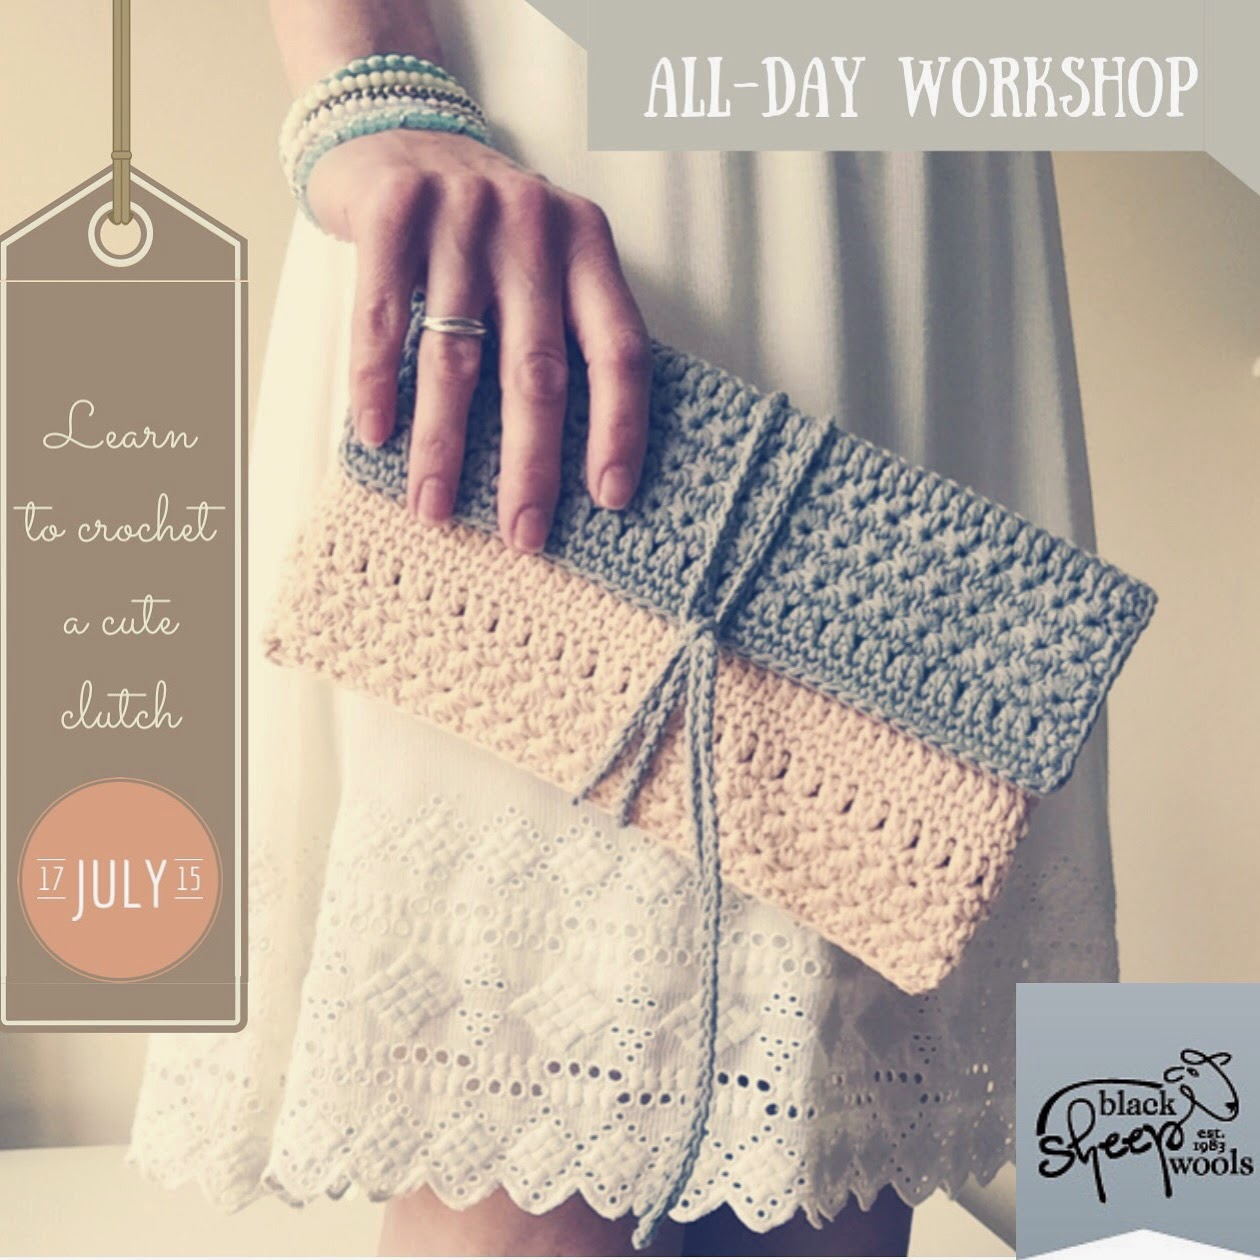 Workshop July 17th